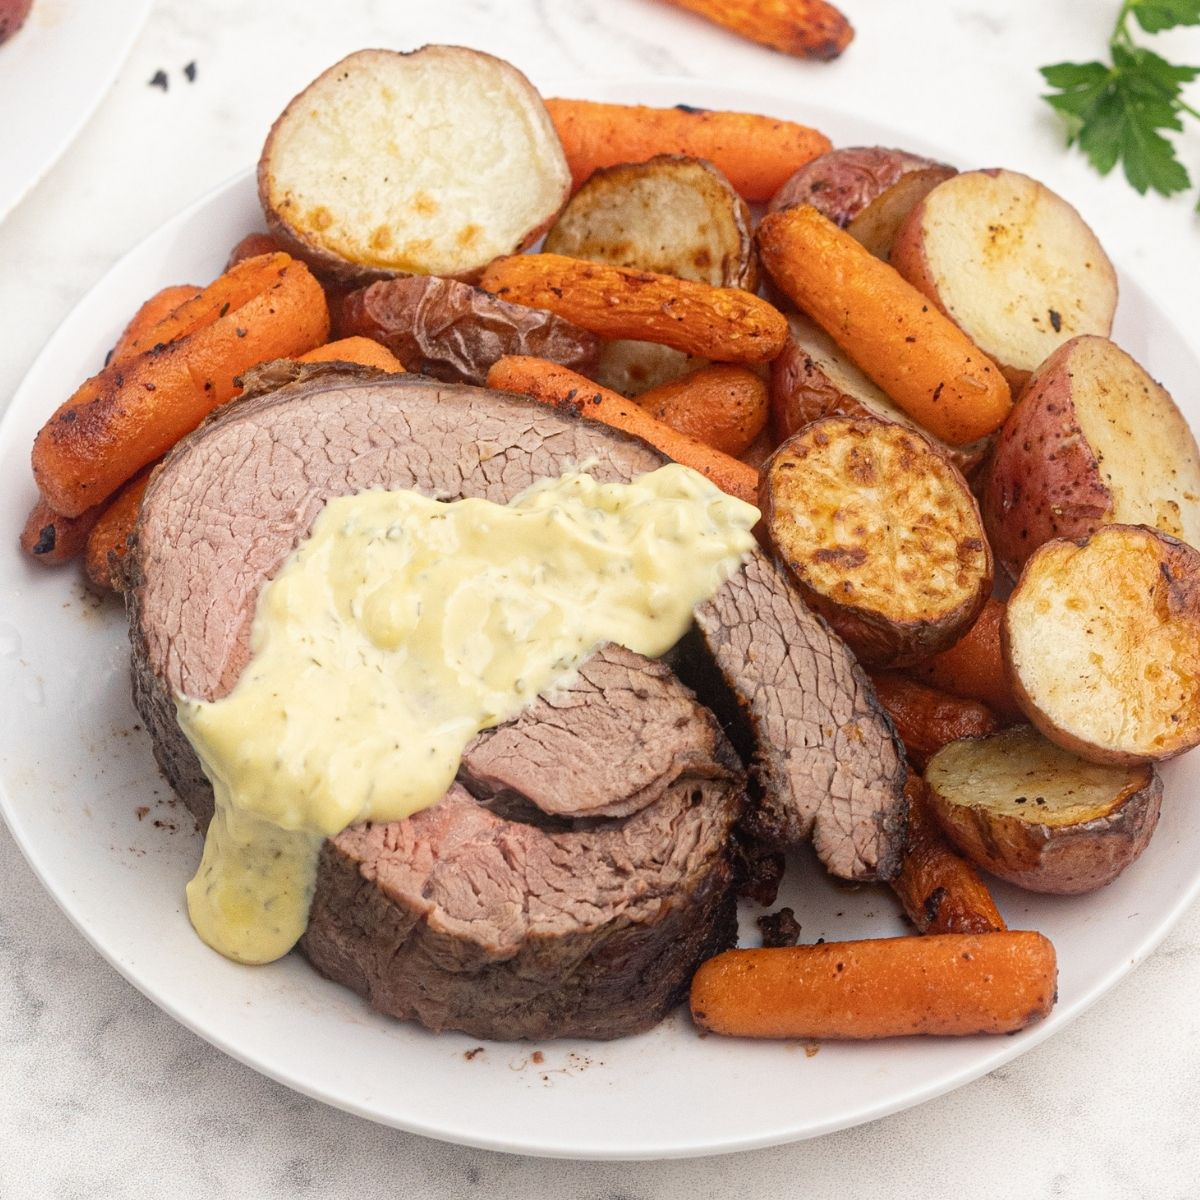 Air fryer top round roast, cooked and topped with bernaise sauce. Served with air fryer roasted potatoes and carrots.